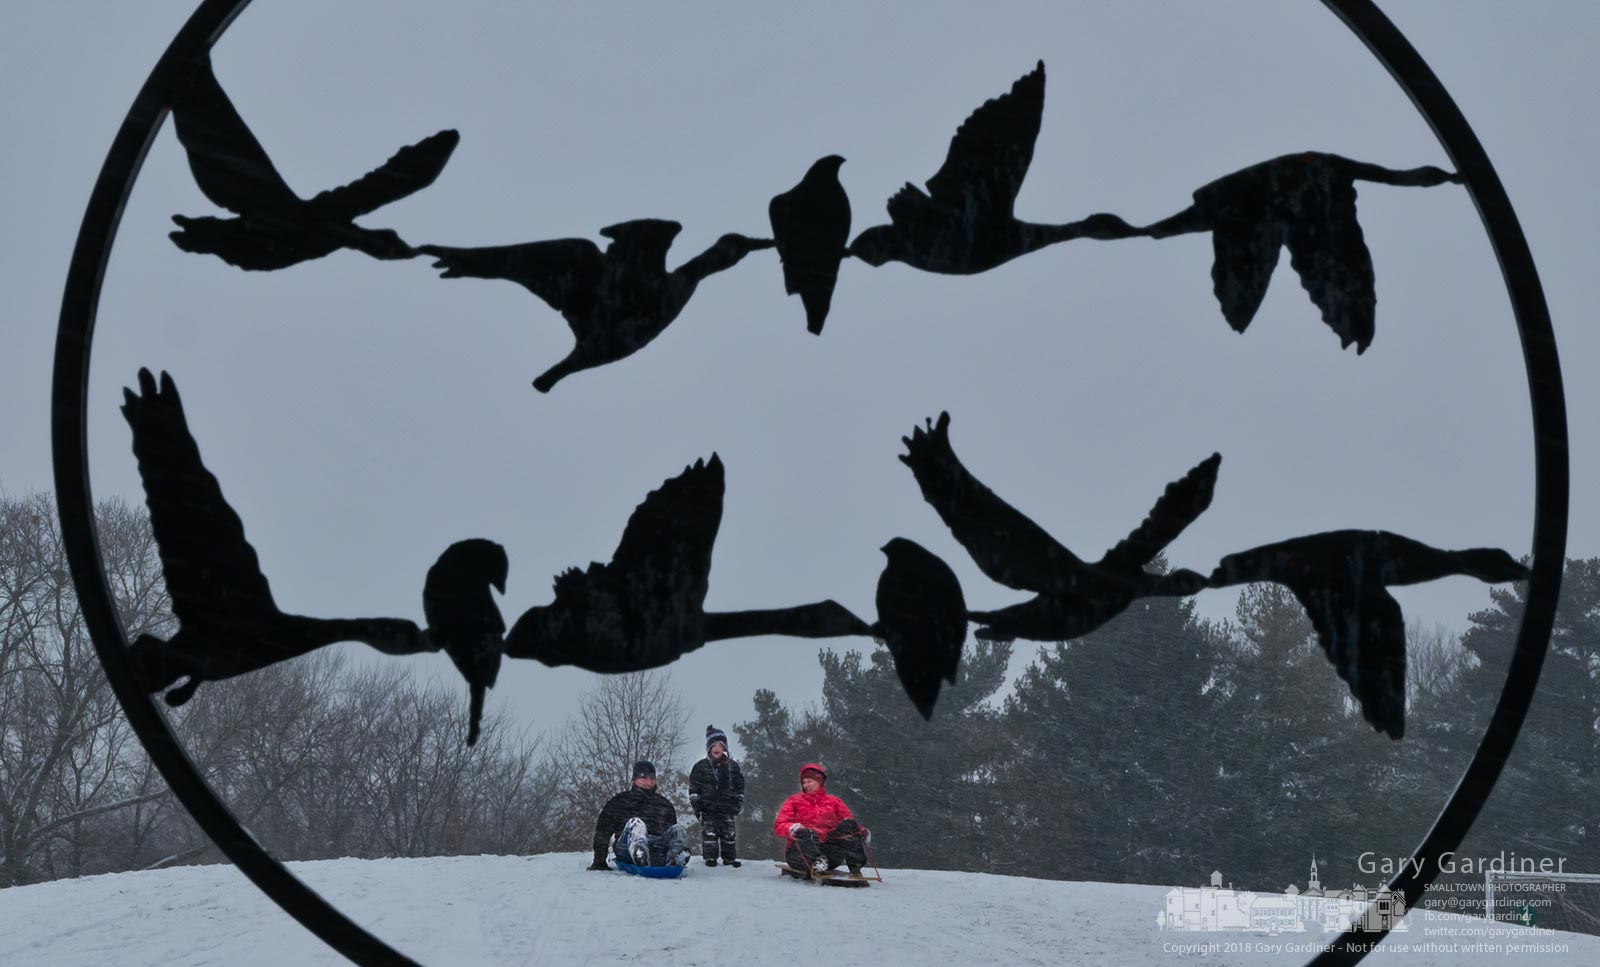 A family gathers at the top of the sledding hill at Highlands Park to enjoy the fresh snow near the metal sculpture depicting birds in flight near the wetlands. My Final Photo for Jan. 15, 2018.